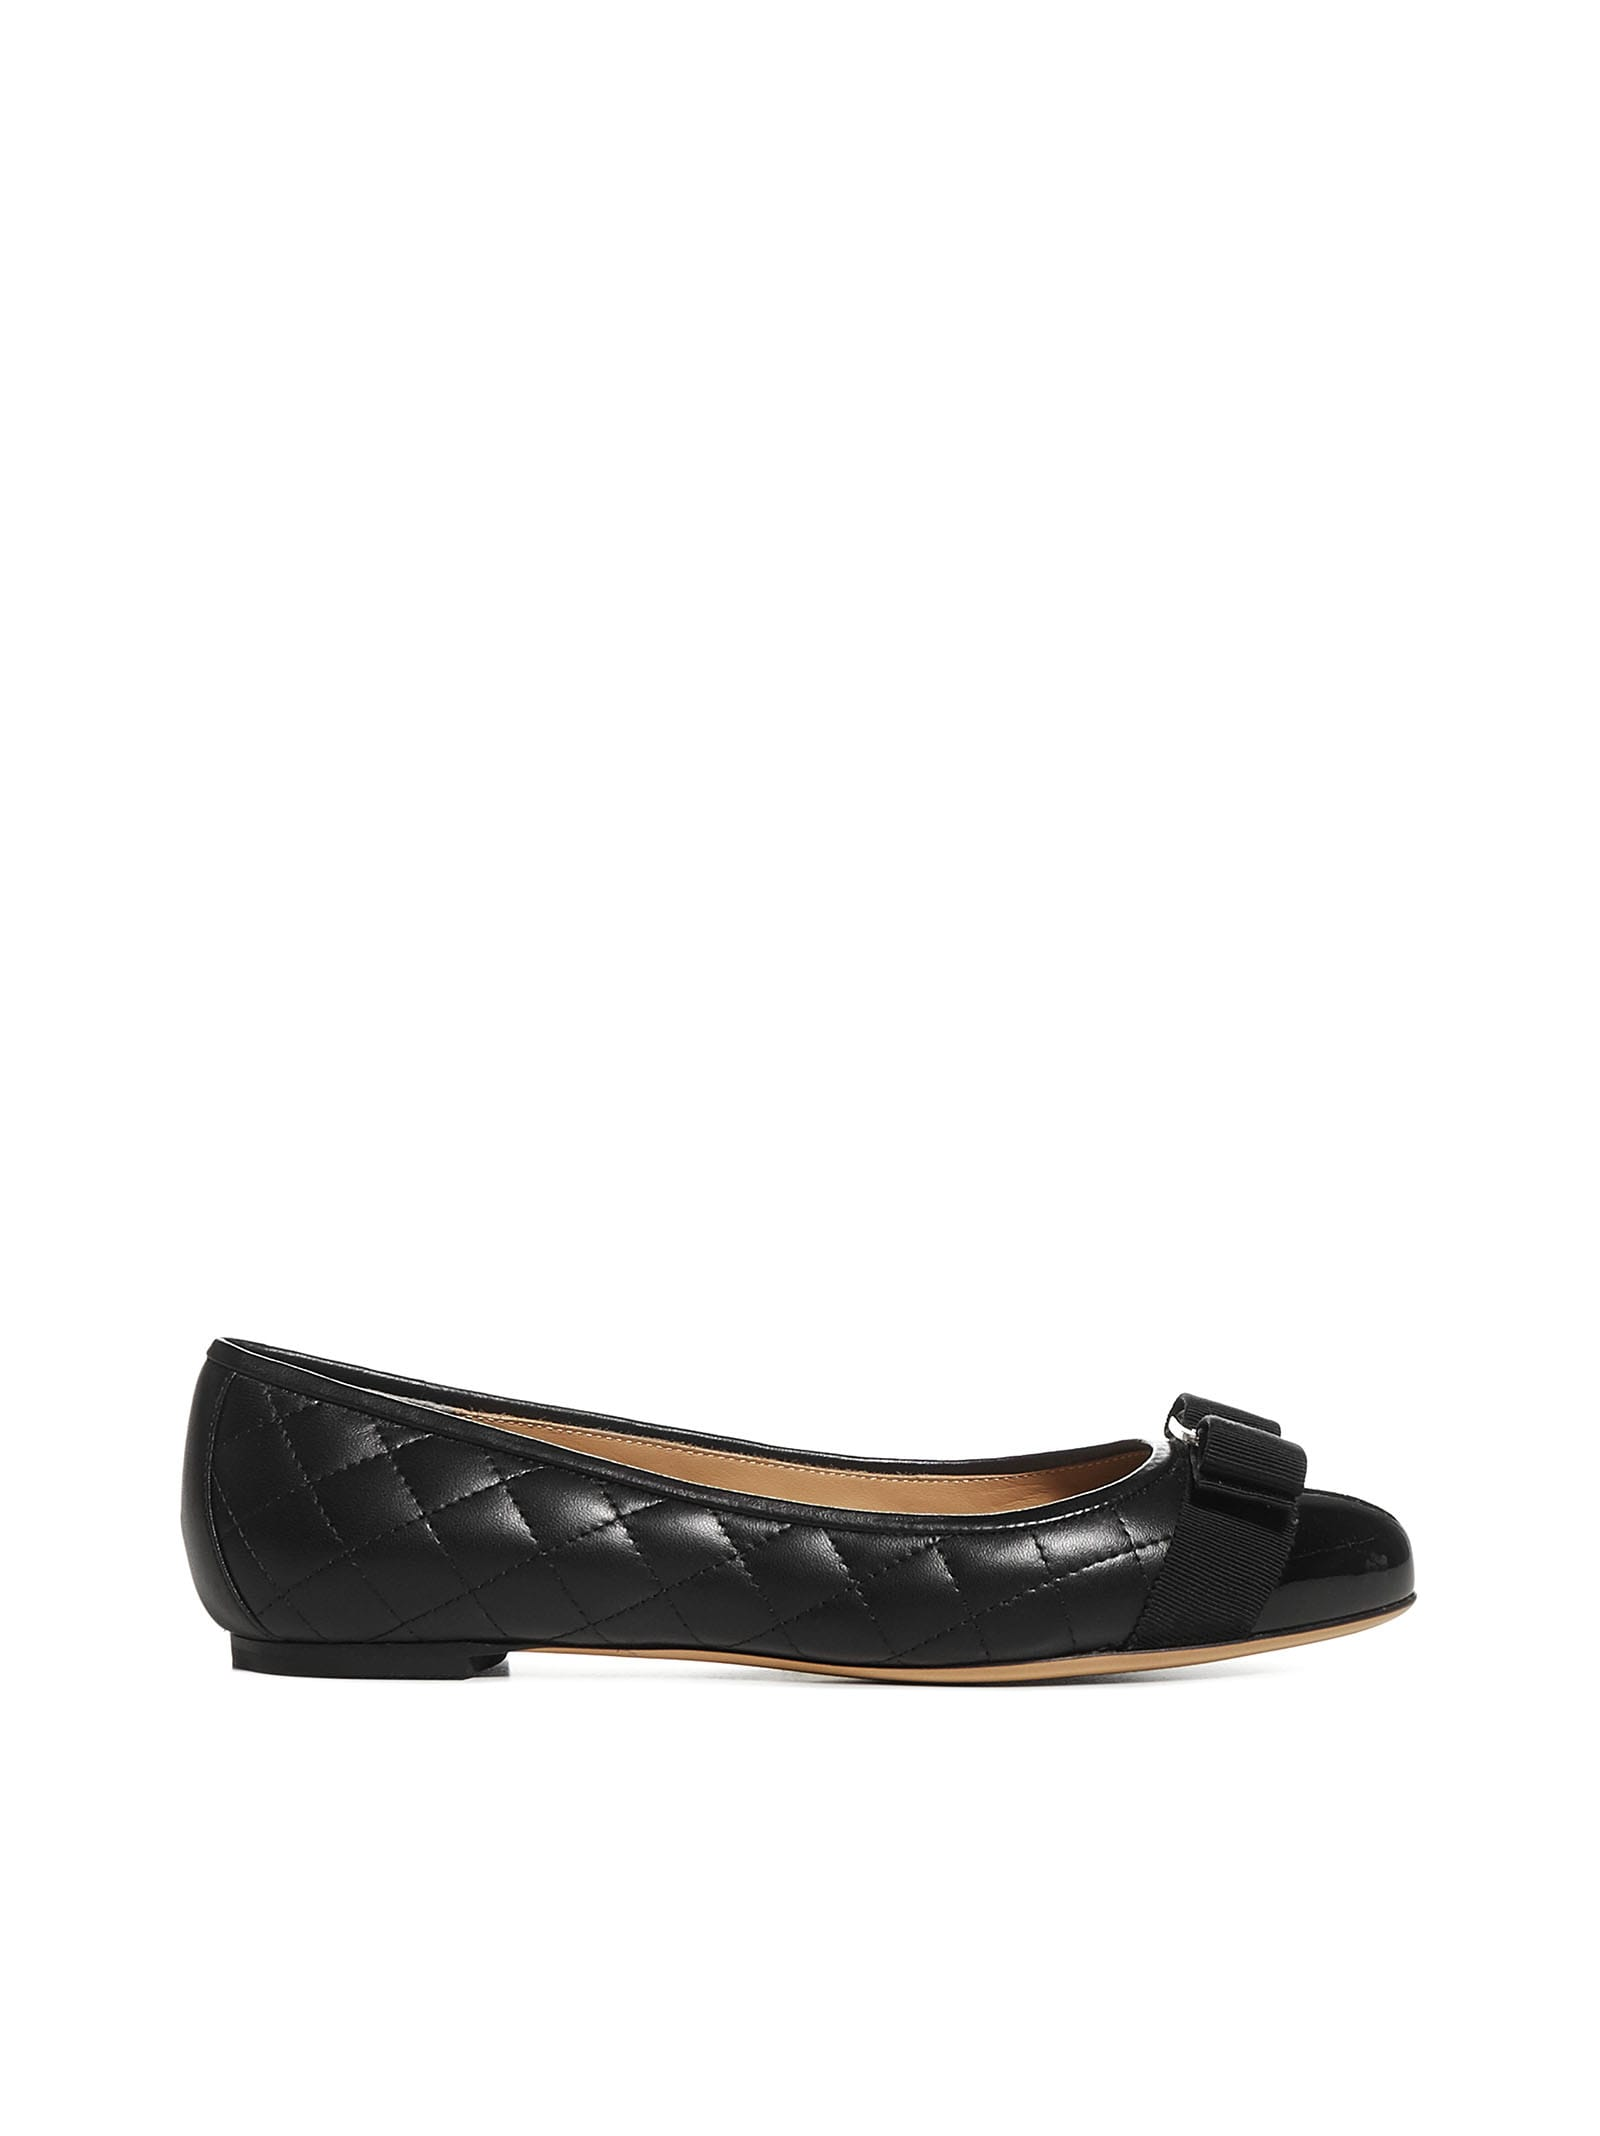 Salvatore Ferragamo Leathers FLAT SHOES